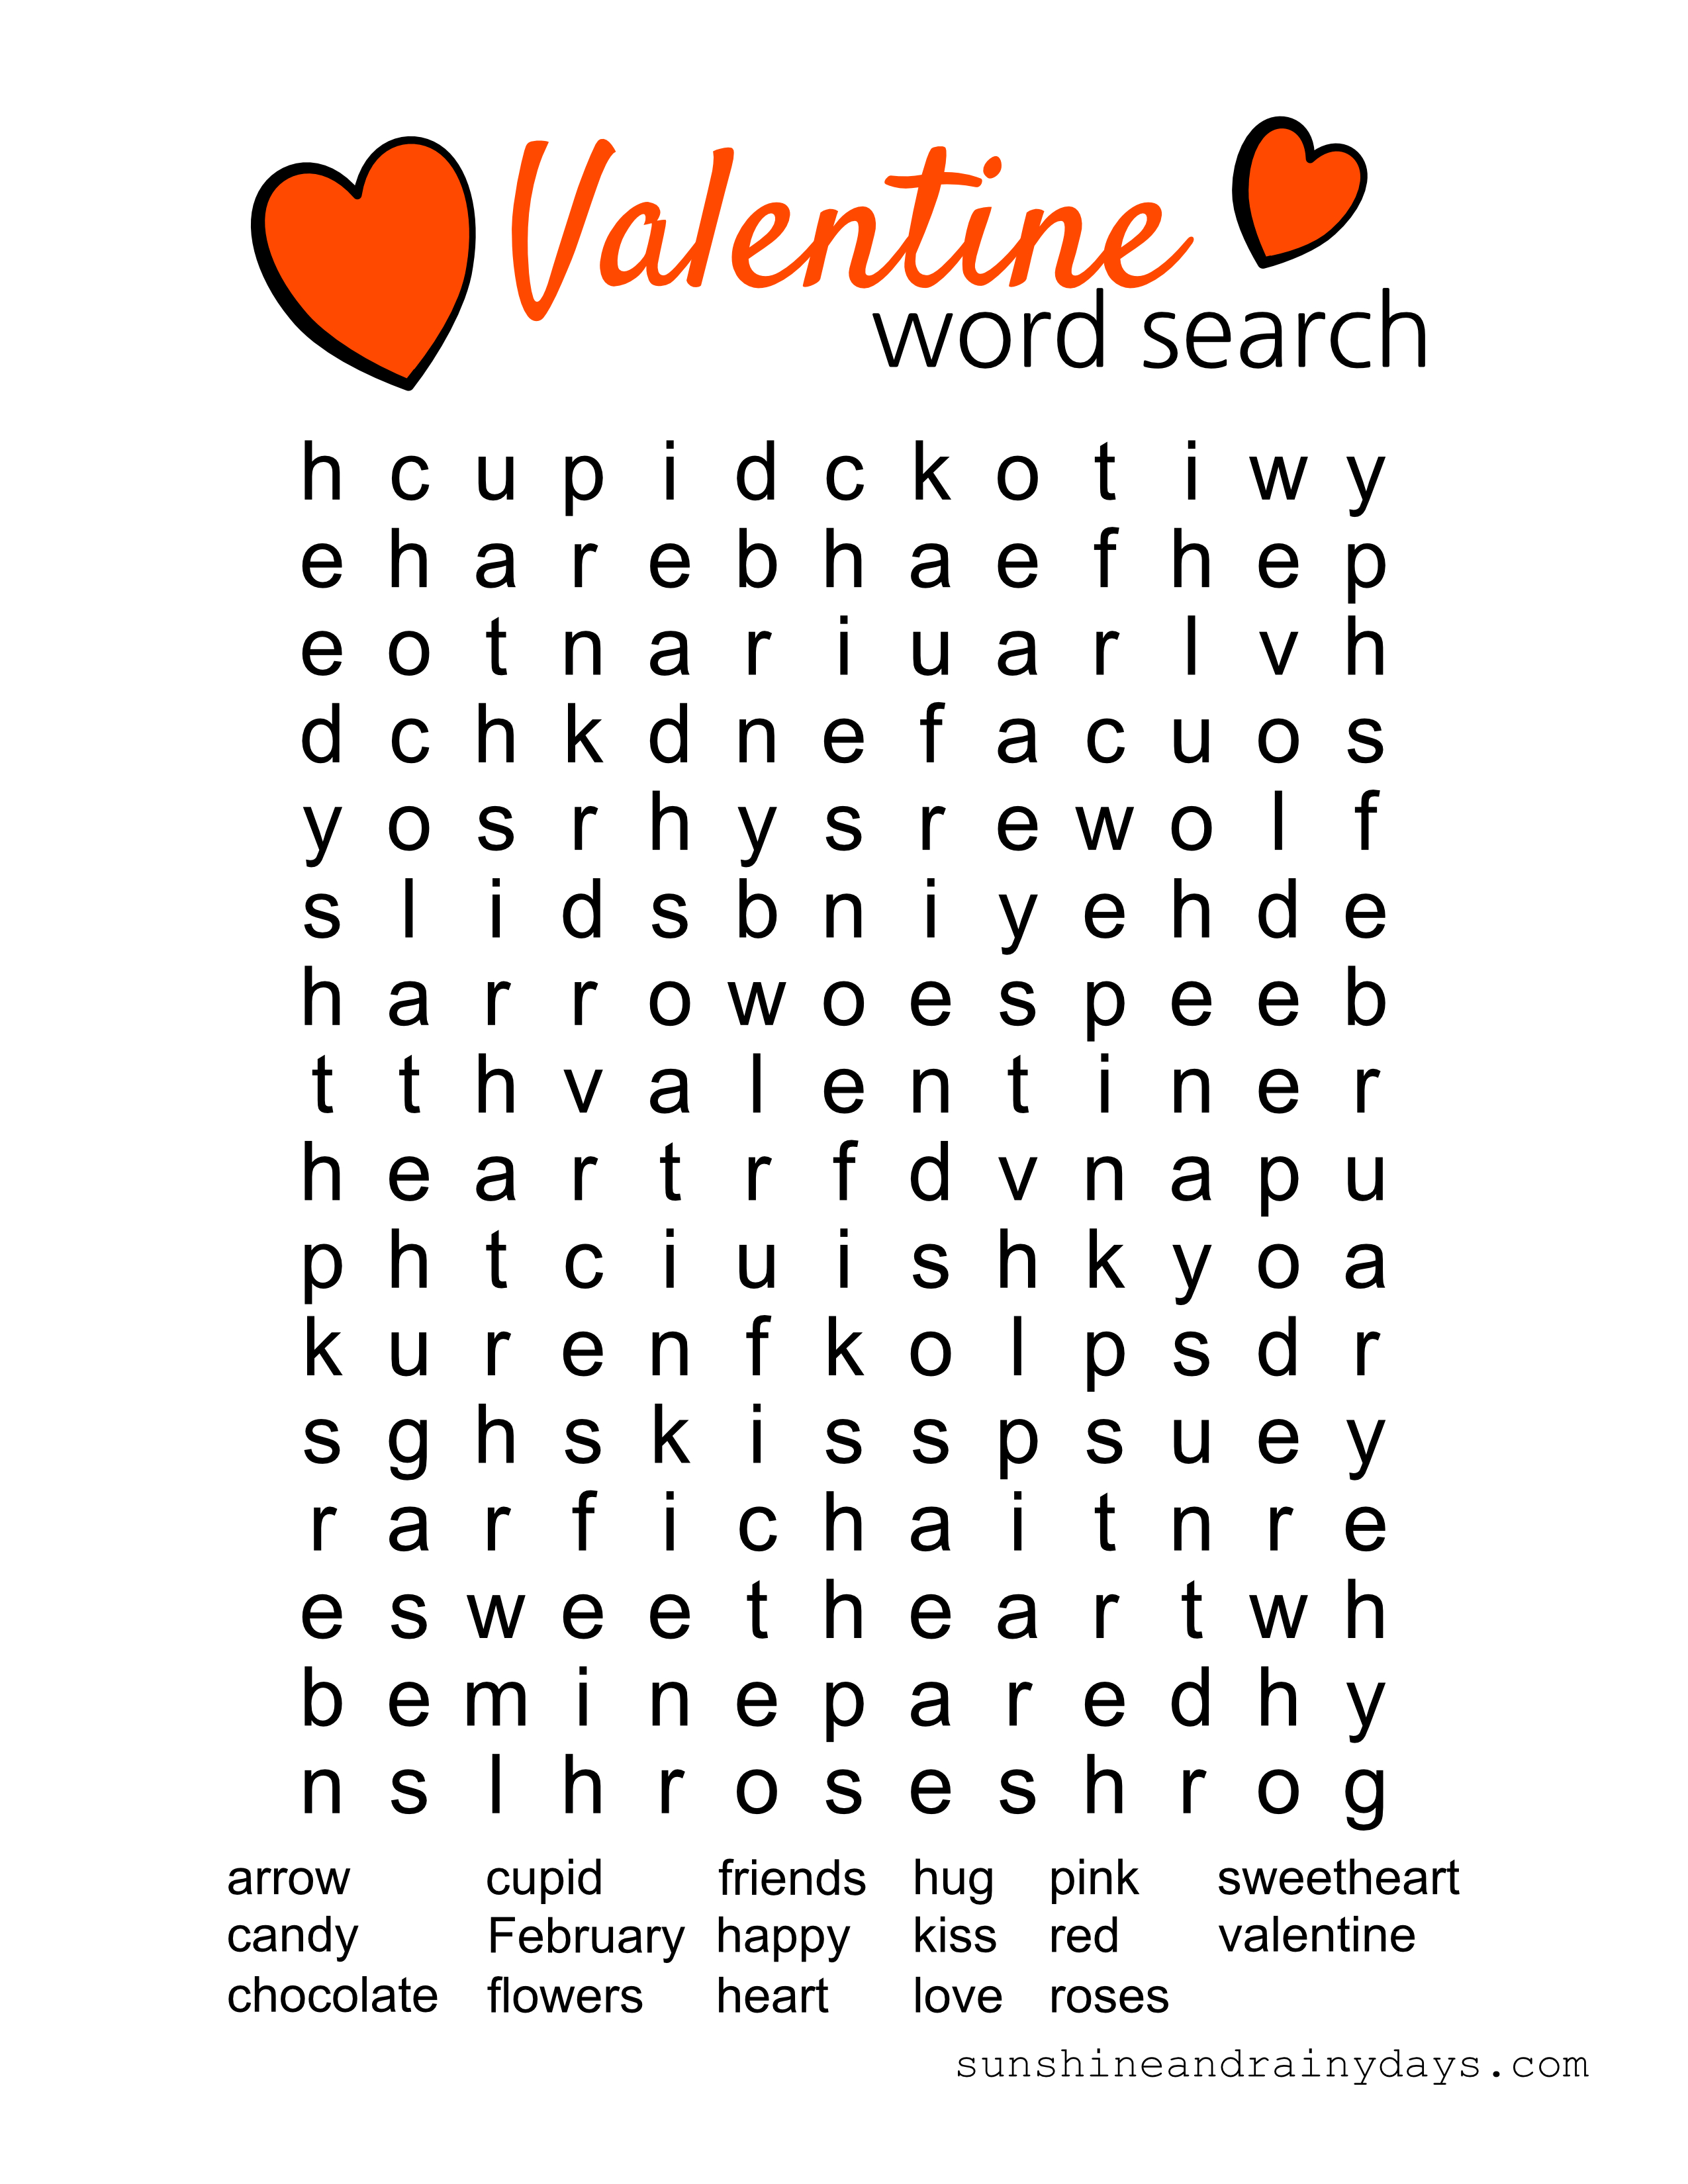 Valentine Word Search Printable - Sunshine And Rainy Days - Free Printable Valentine Word Search For Adults